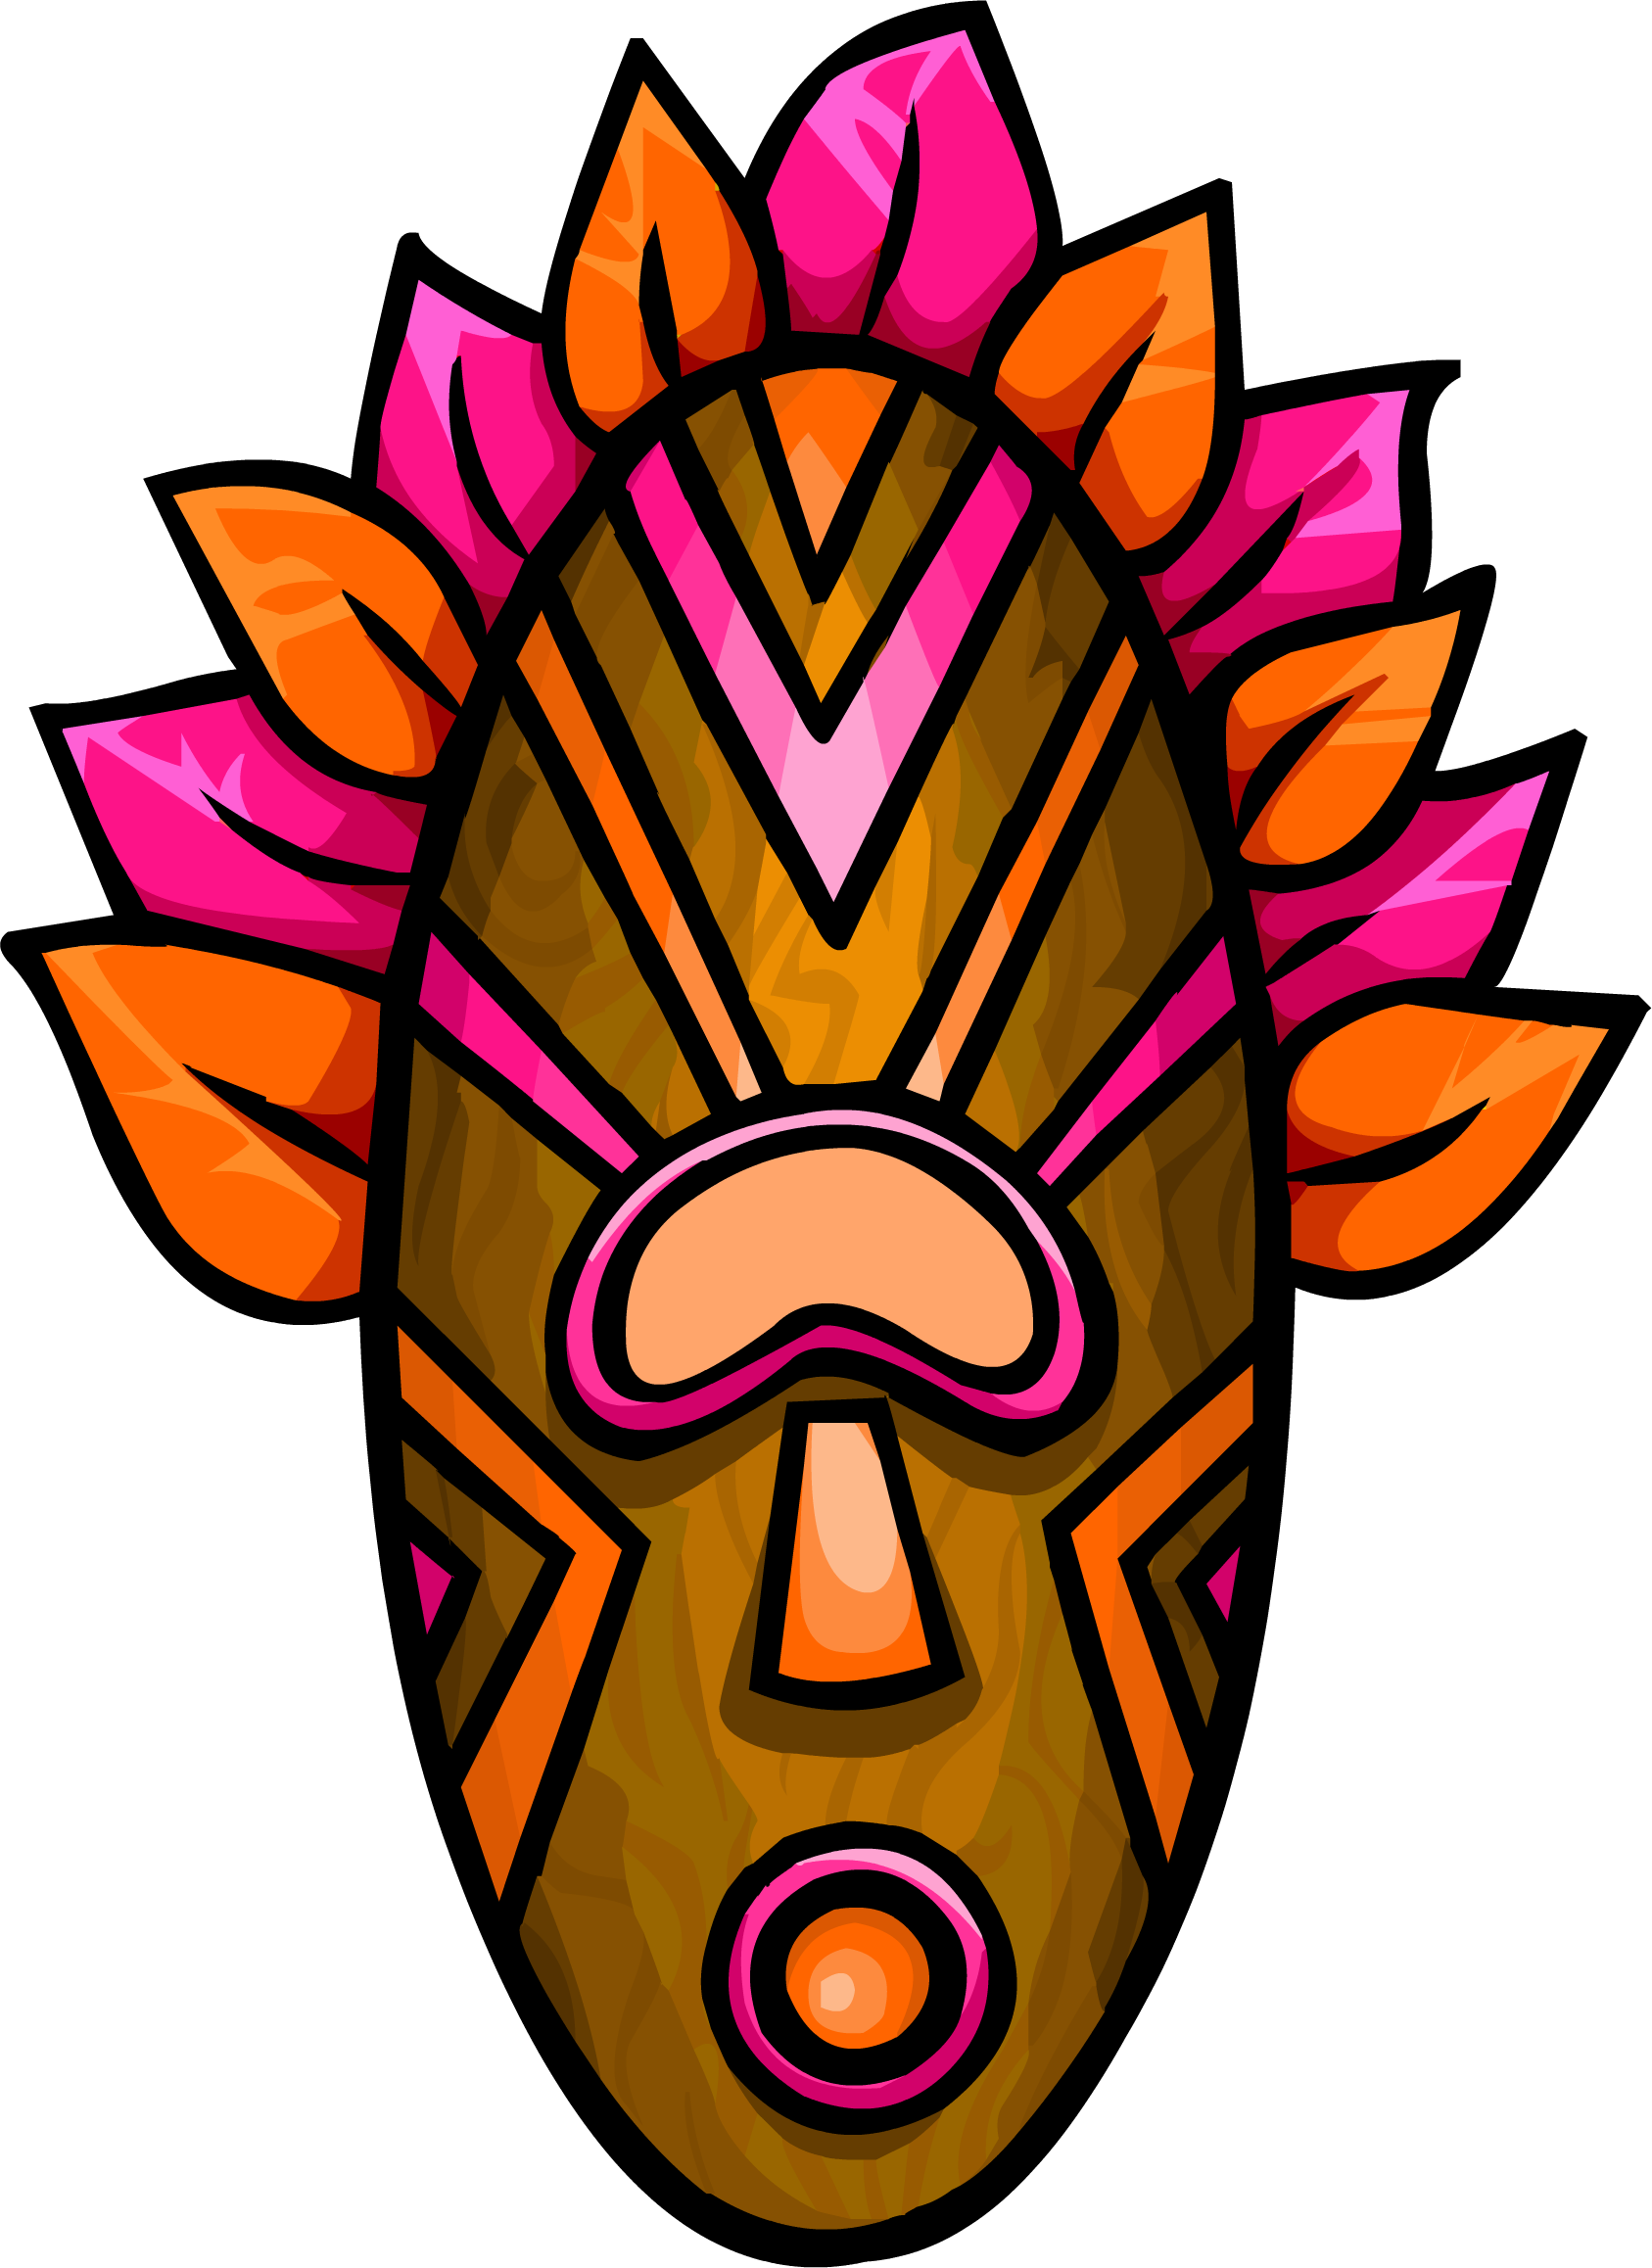 Tiki mask png. Image pink club penguin